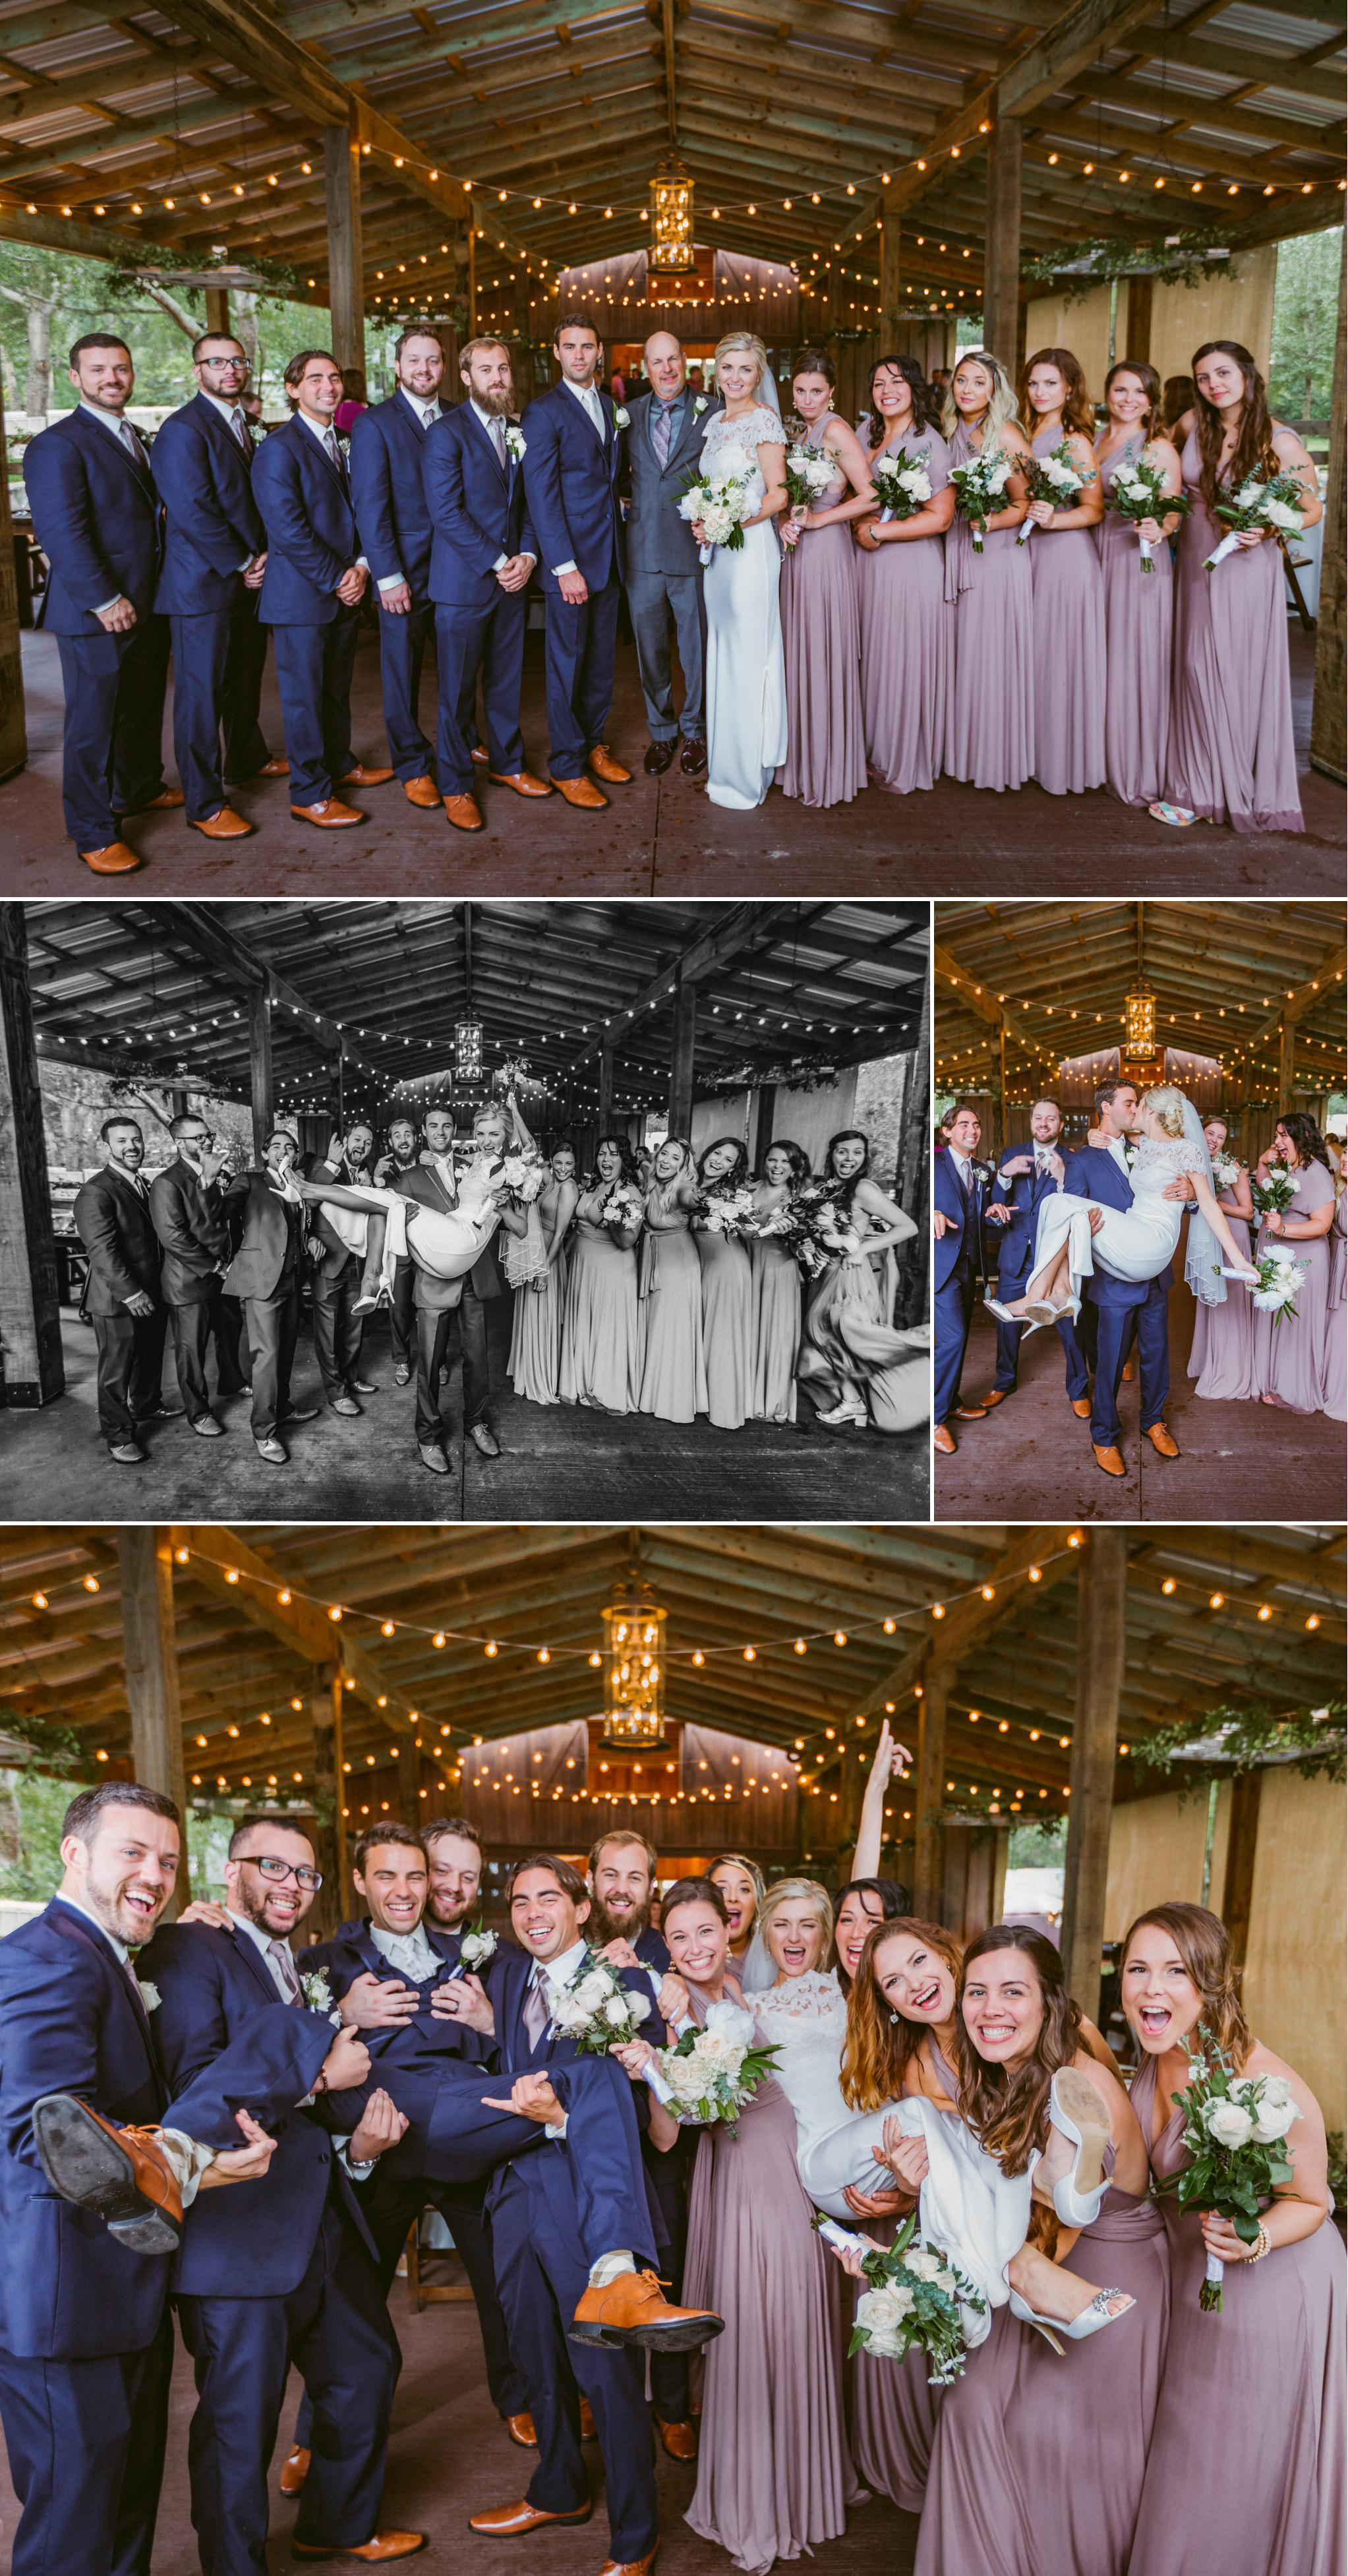 Boho Chic Orlando Wedding Photography Delameter House - Angela + Max 17.jpg